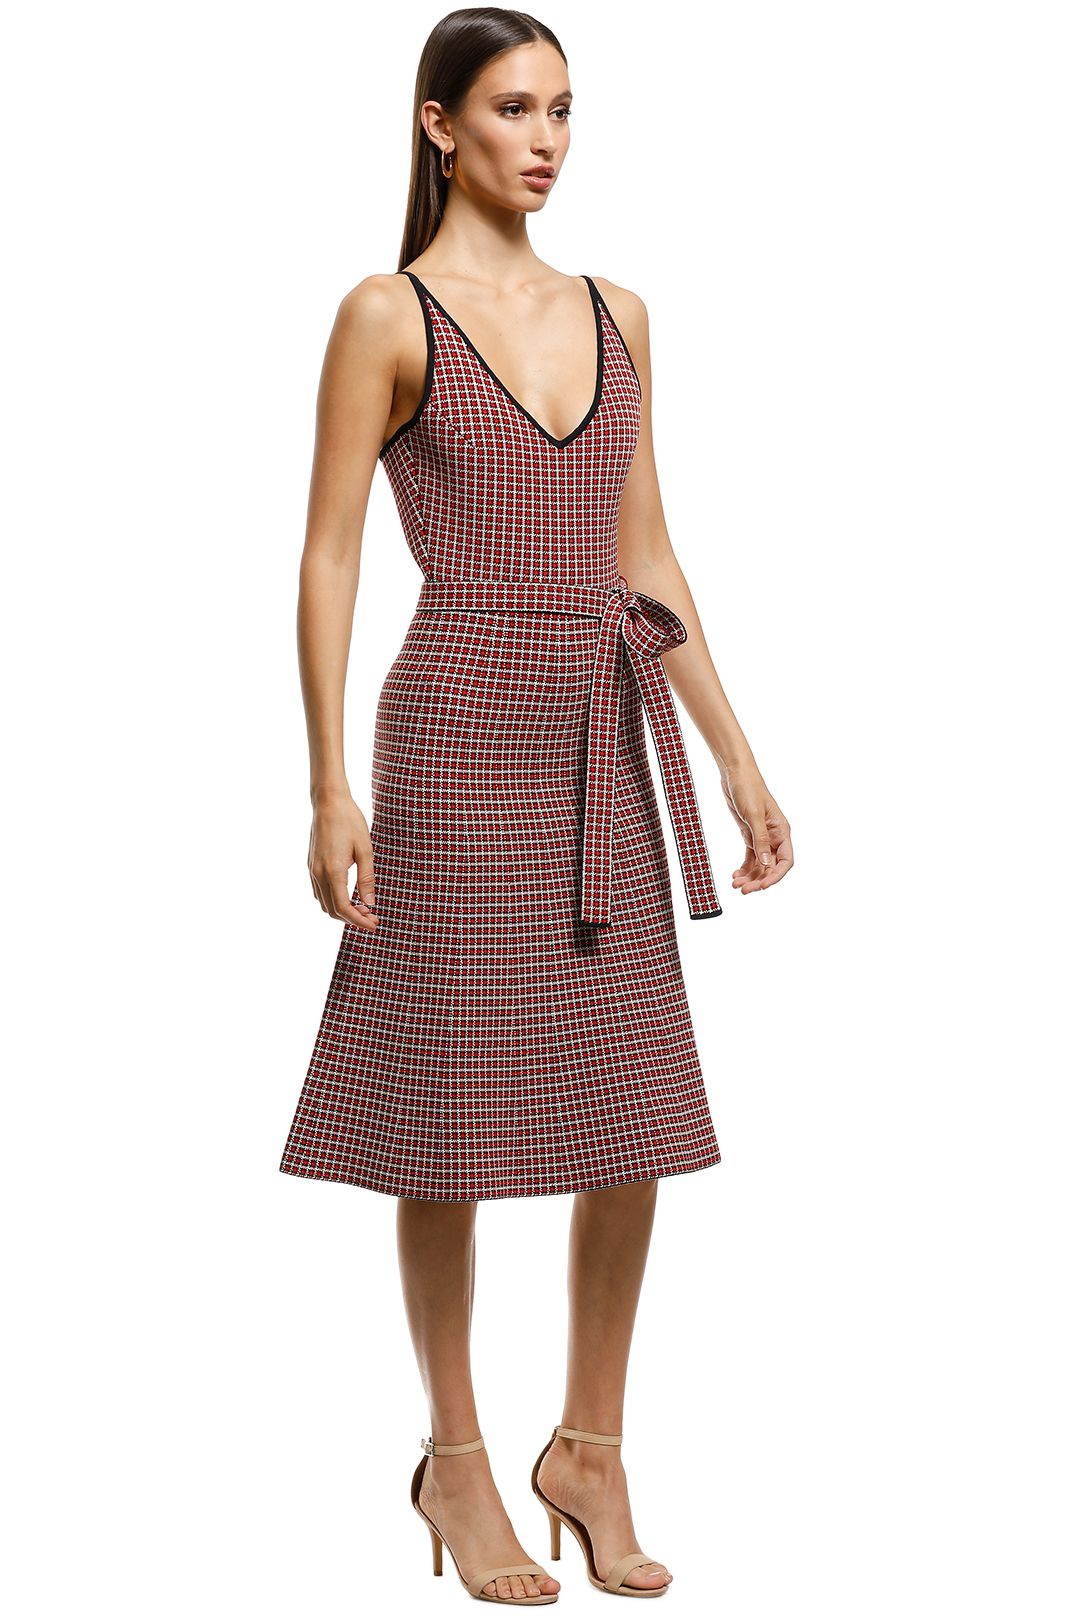 Scanlan Theodore - Crepe Knit Plaid Dress - Red - Side